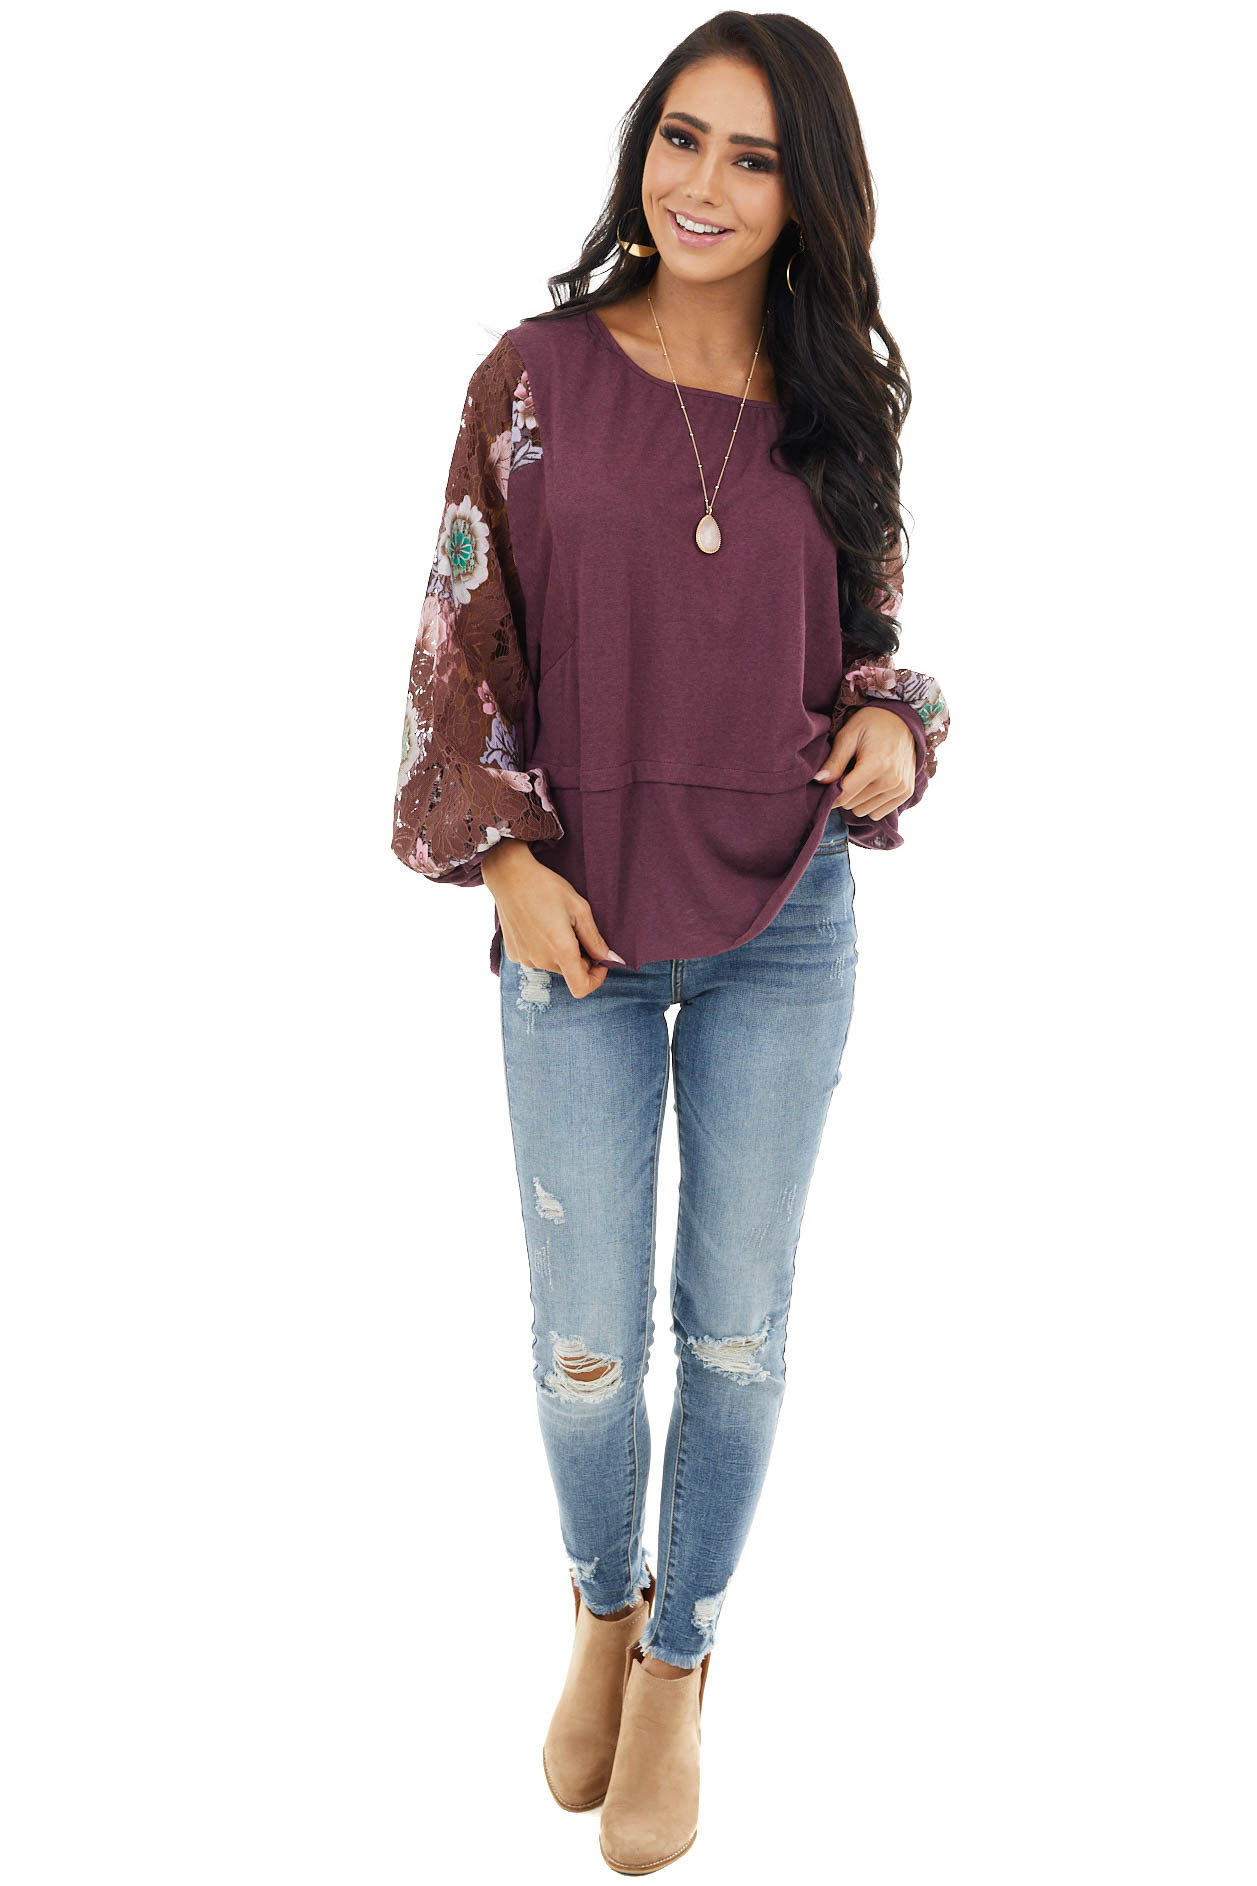 Plum Round Neck Knit Top with Floral Lace Long Sleeves